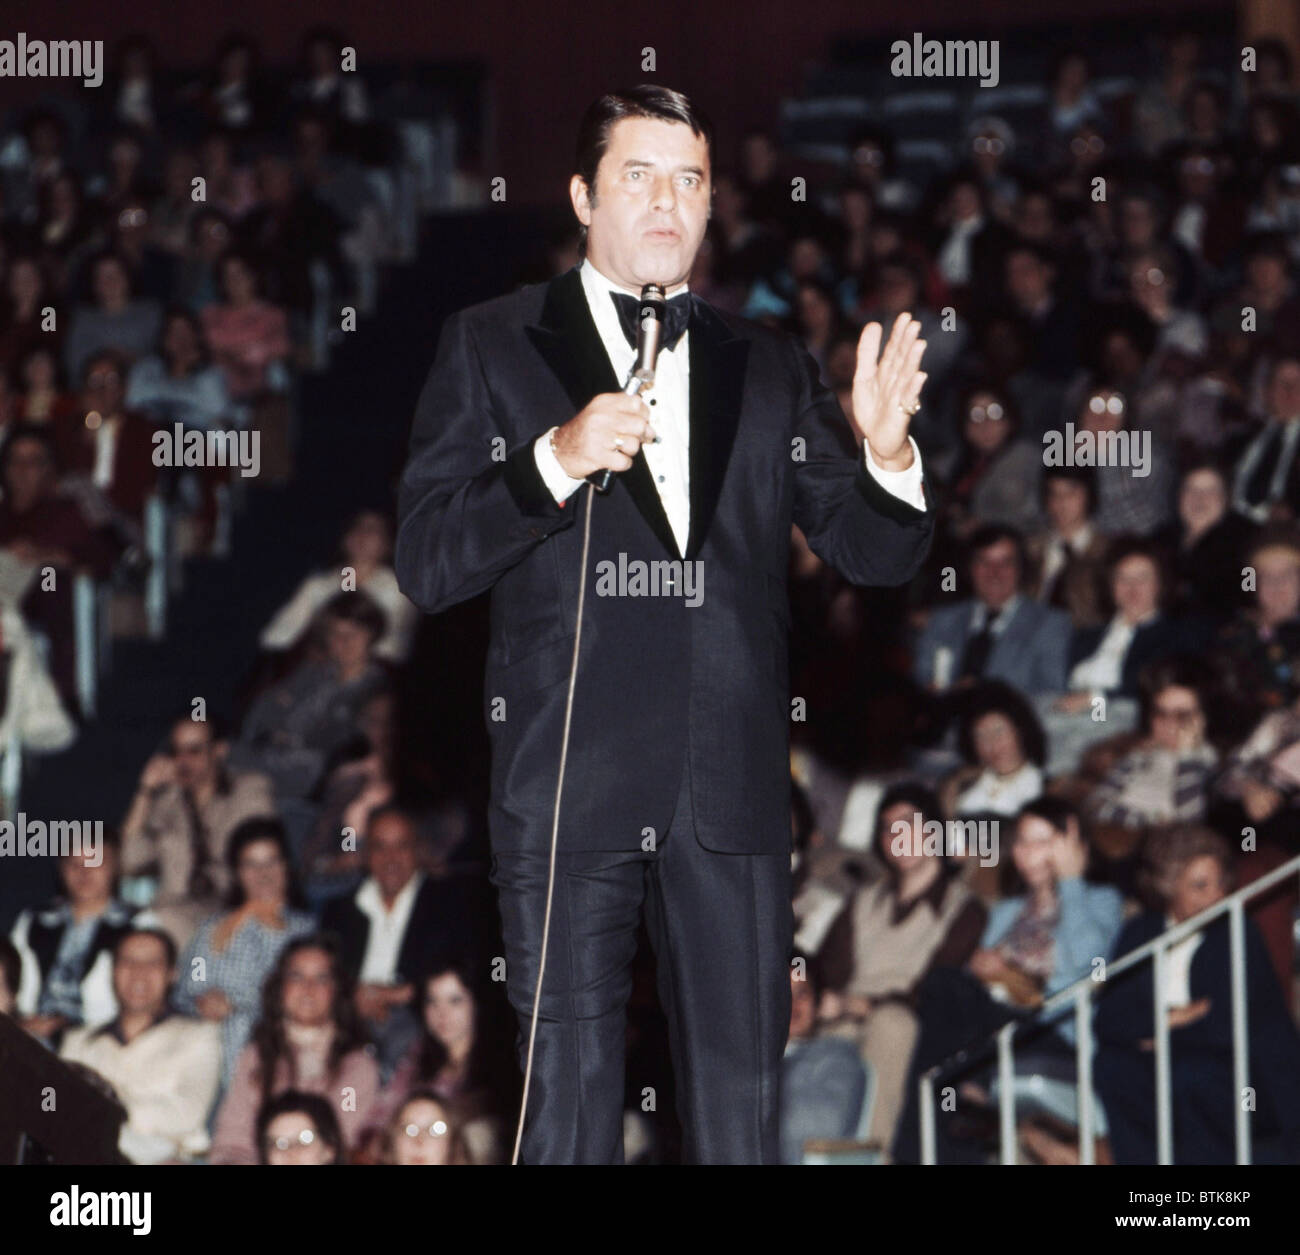 Jerry Lewis, 1975, Millrun Playhouse Theater in the Round, Niles, Illinois. - Stock Image